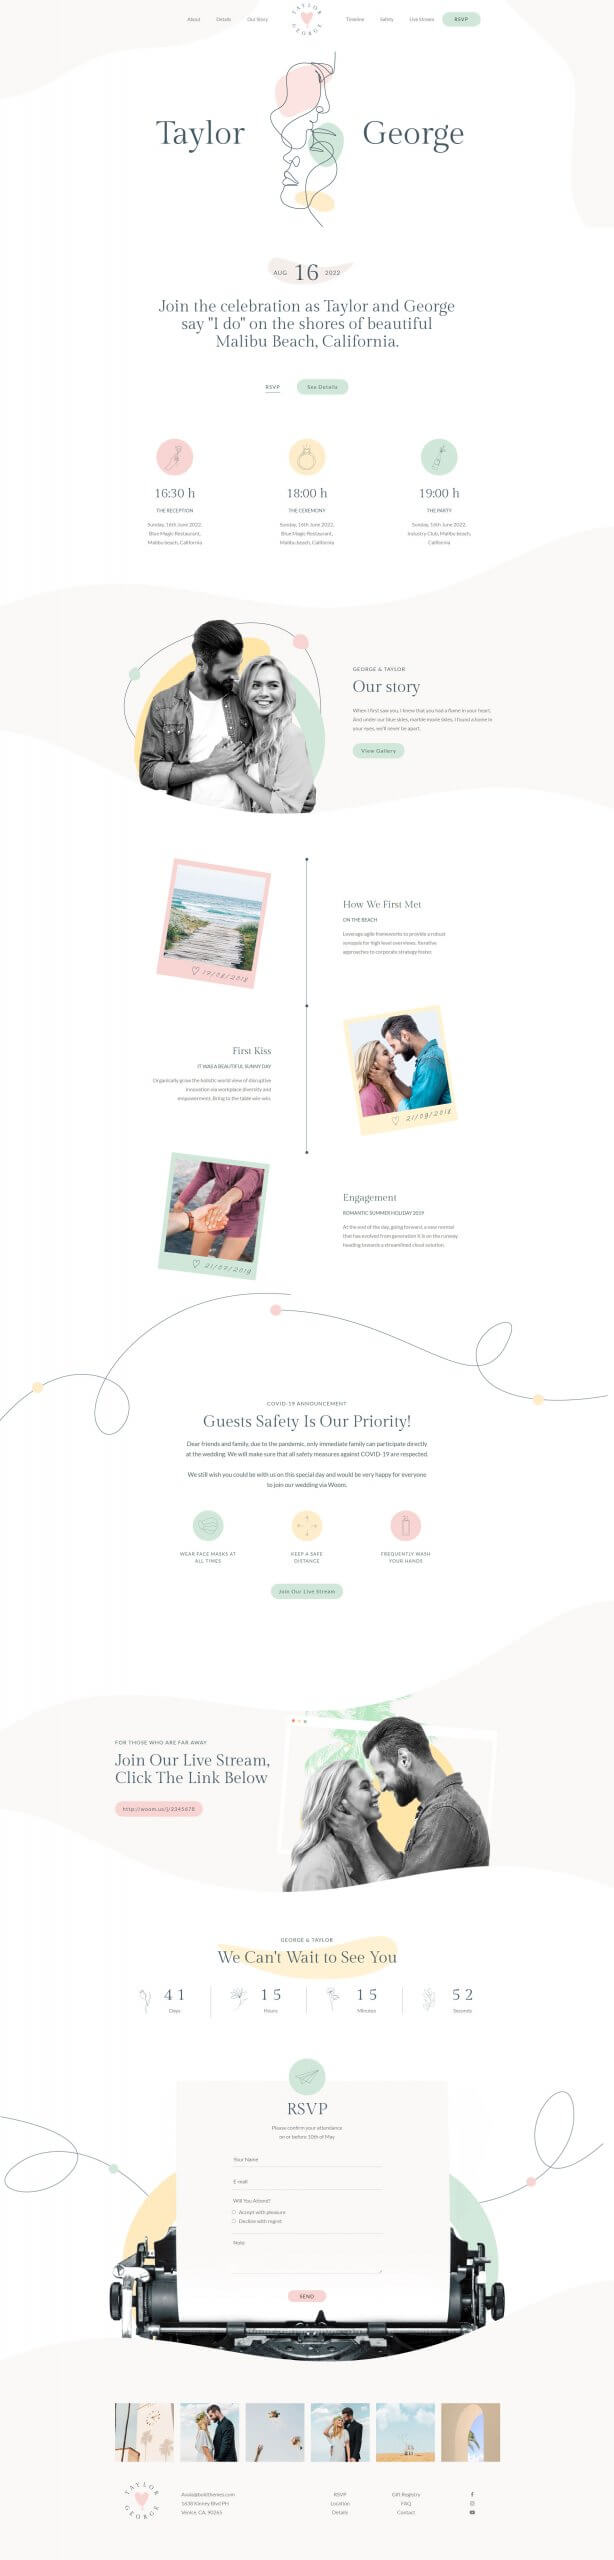 http://avala.bold-themes.com/wp-content/uploads/2021/02/Summer-Home-02-scaled.jpg